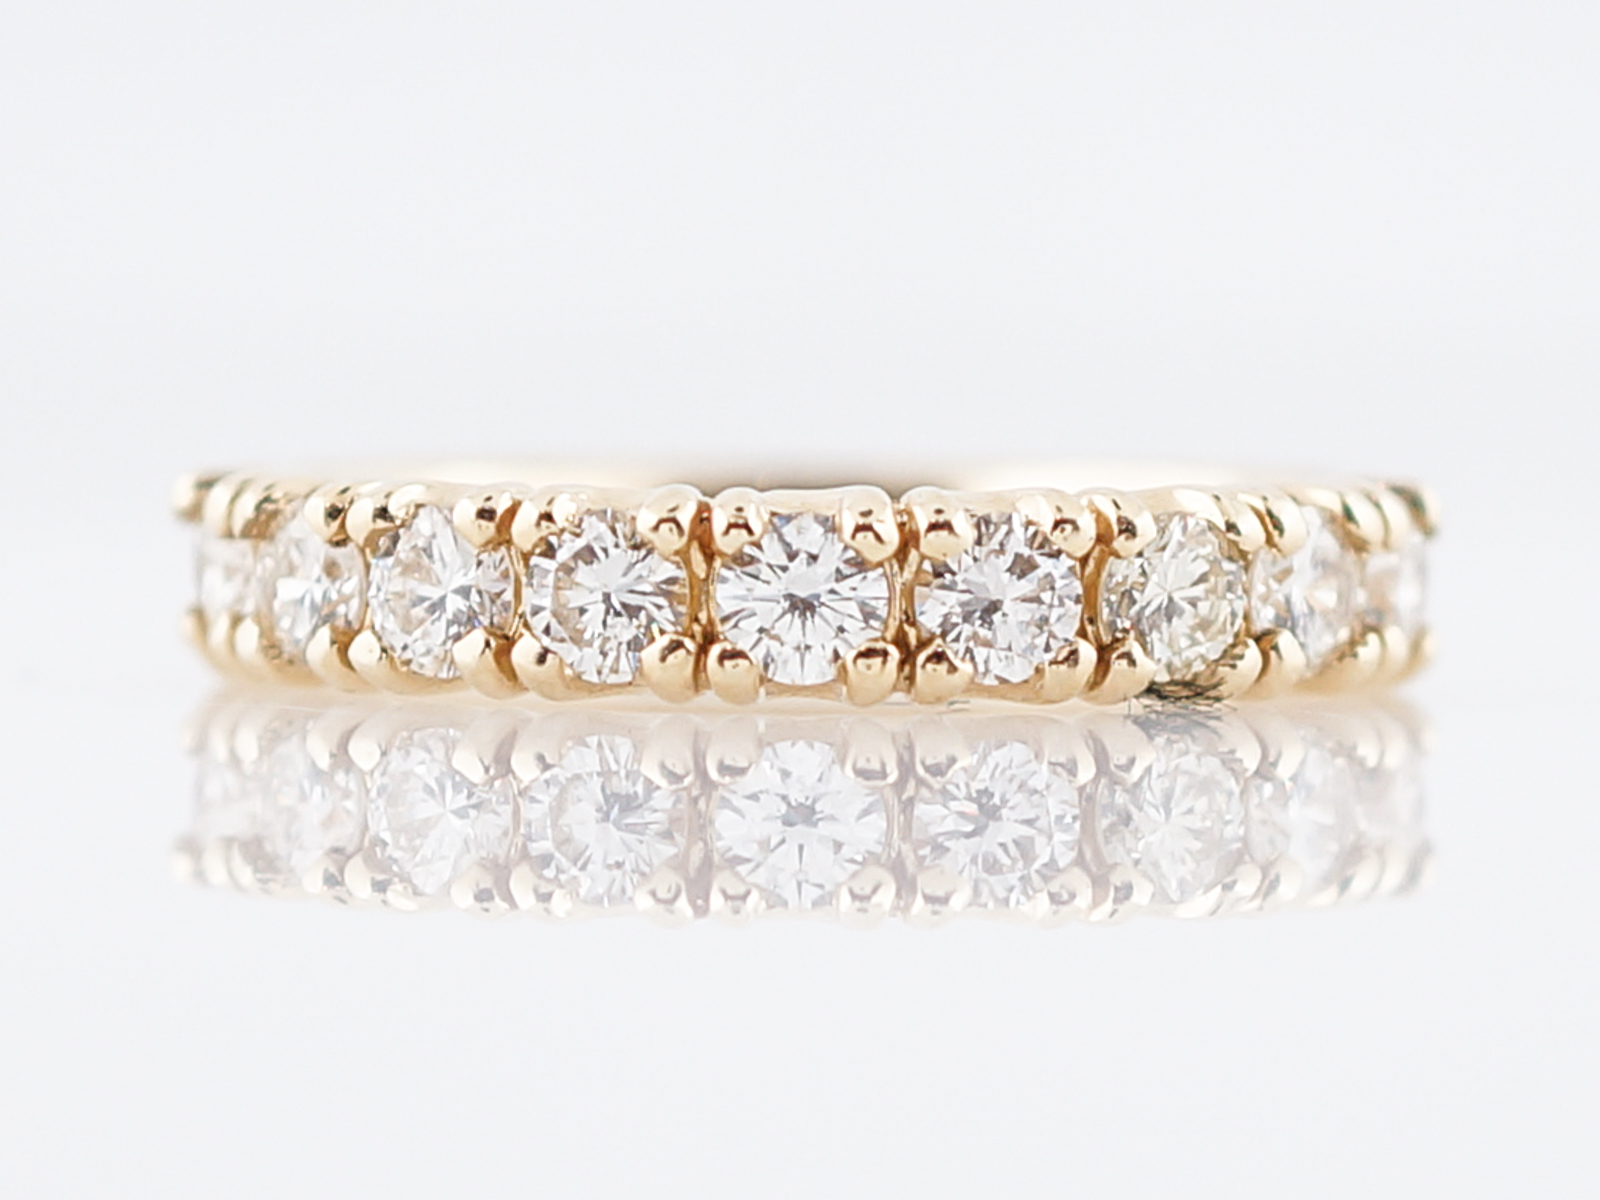 van band round baguette bands wedding cut arpels and cleef all jewelry diamond eternity ring